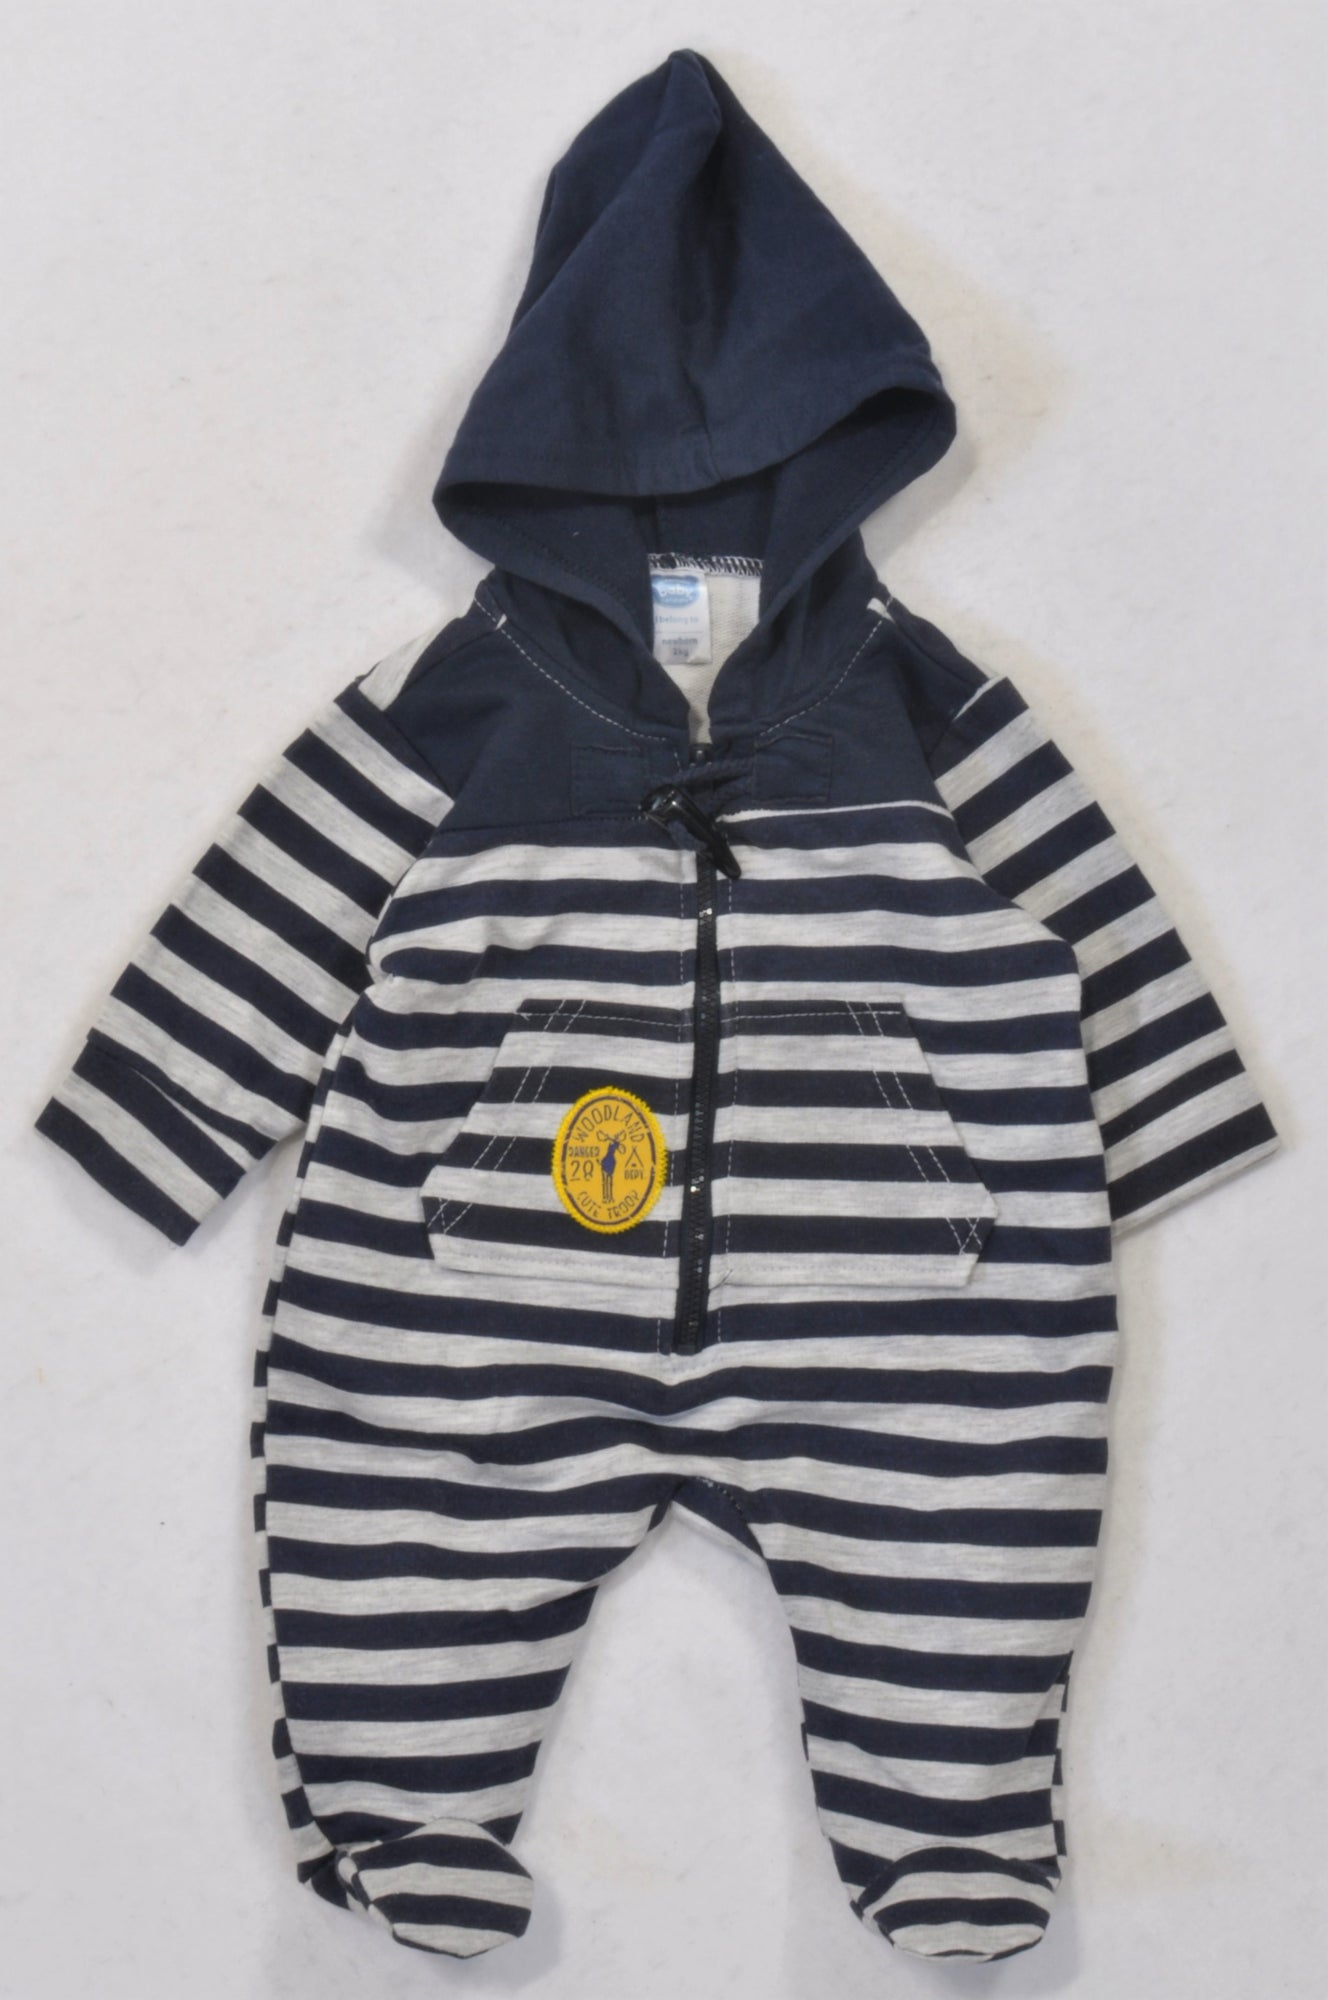 Ackermans Navy & Grey Striped Toggle Hooded Onesie Boys N-B